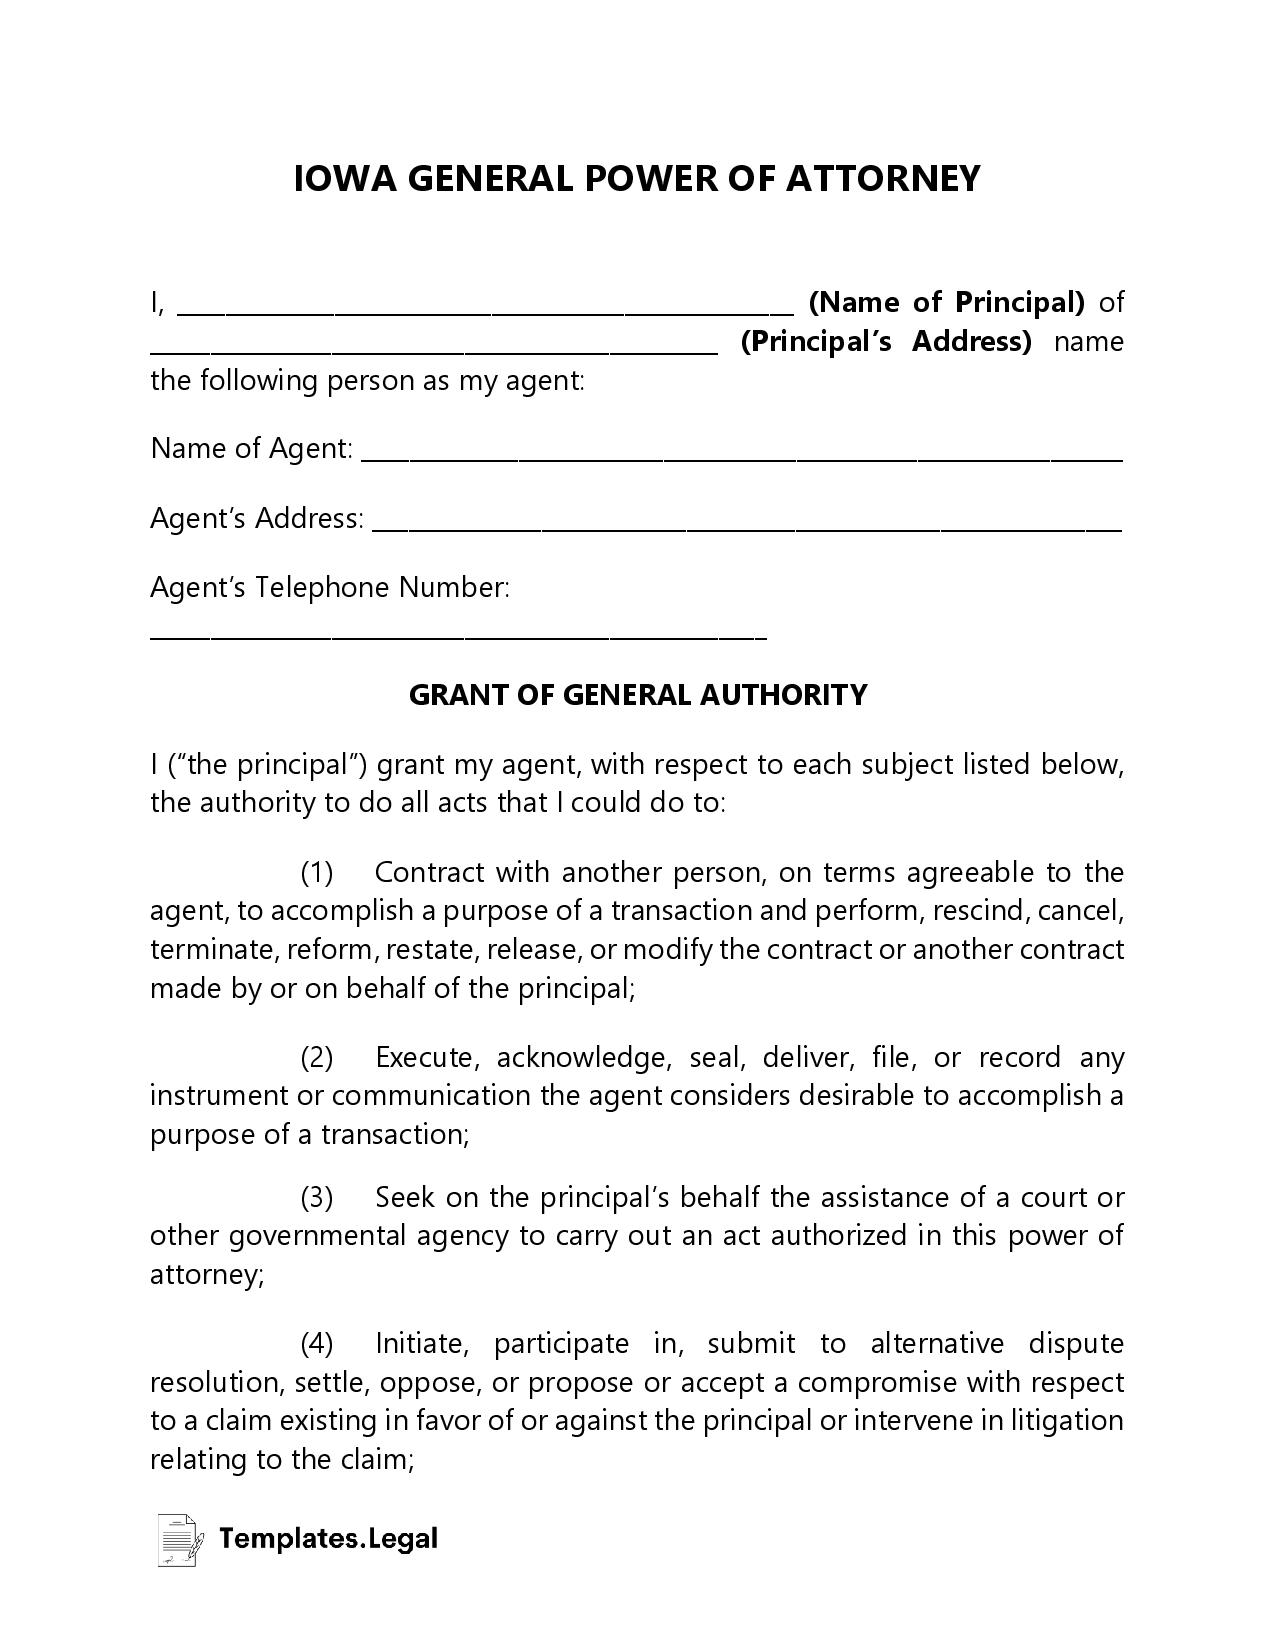 Iowa General Power of Attorney - Templates.Legal